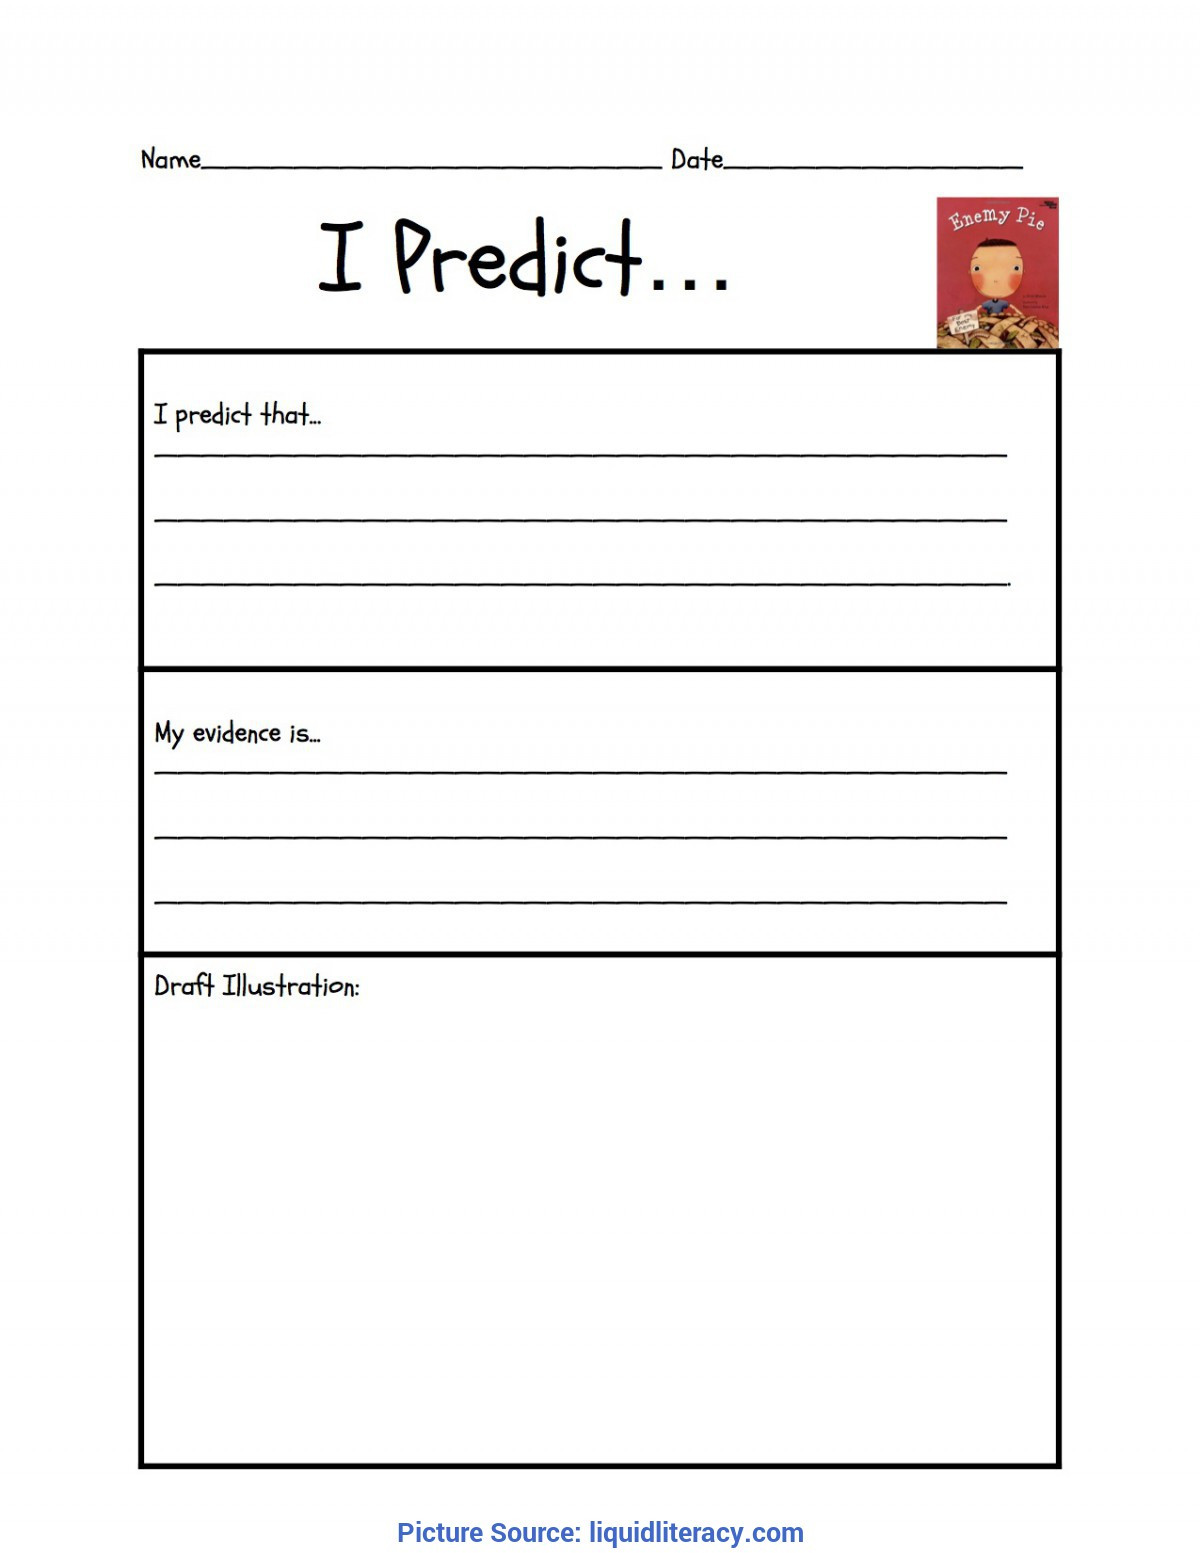 Making Predictions Worksheets 3rd Grade Workshop Classroom Making Inferences Mini Lessons